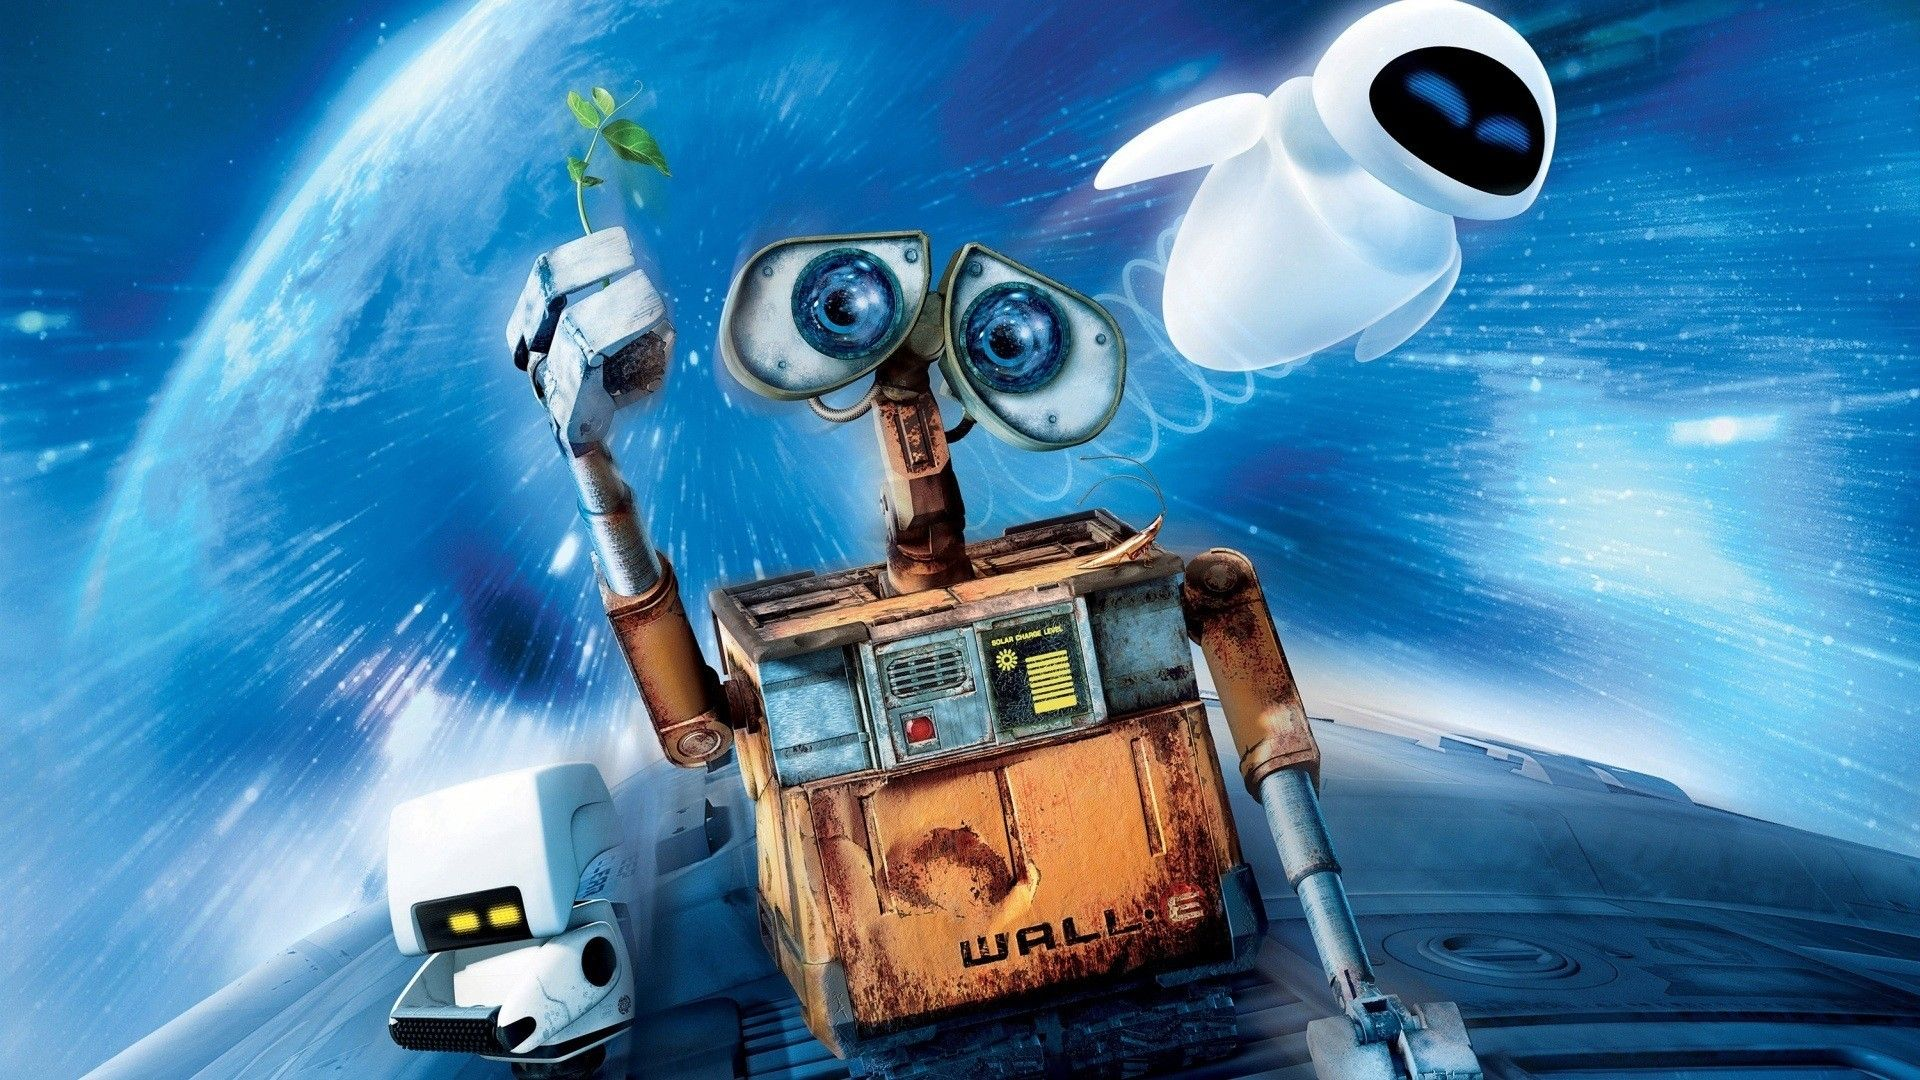 Wall · E Papel pintado 17 - 1920 X 1080 | stmed.net